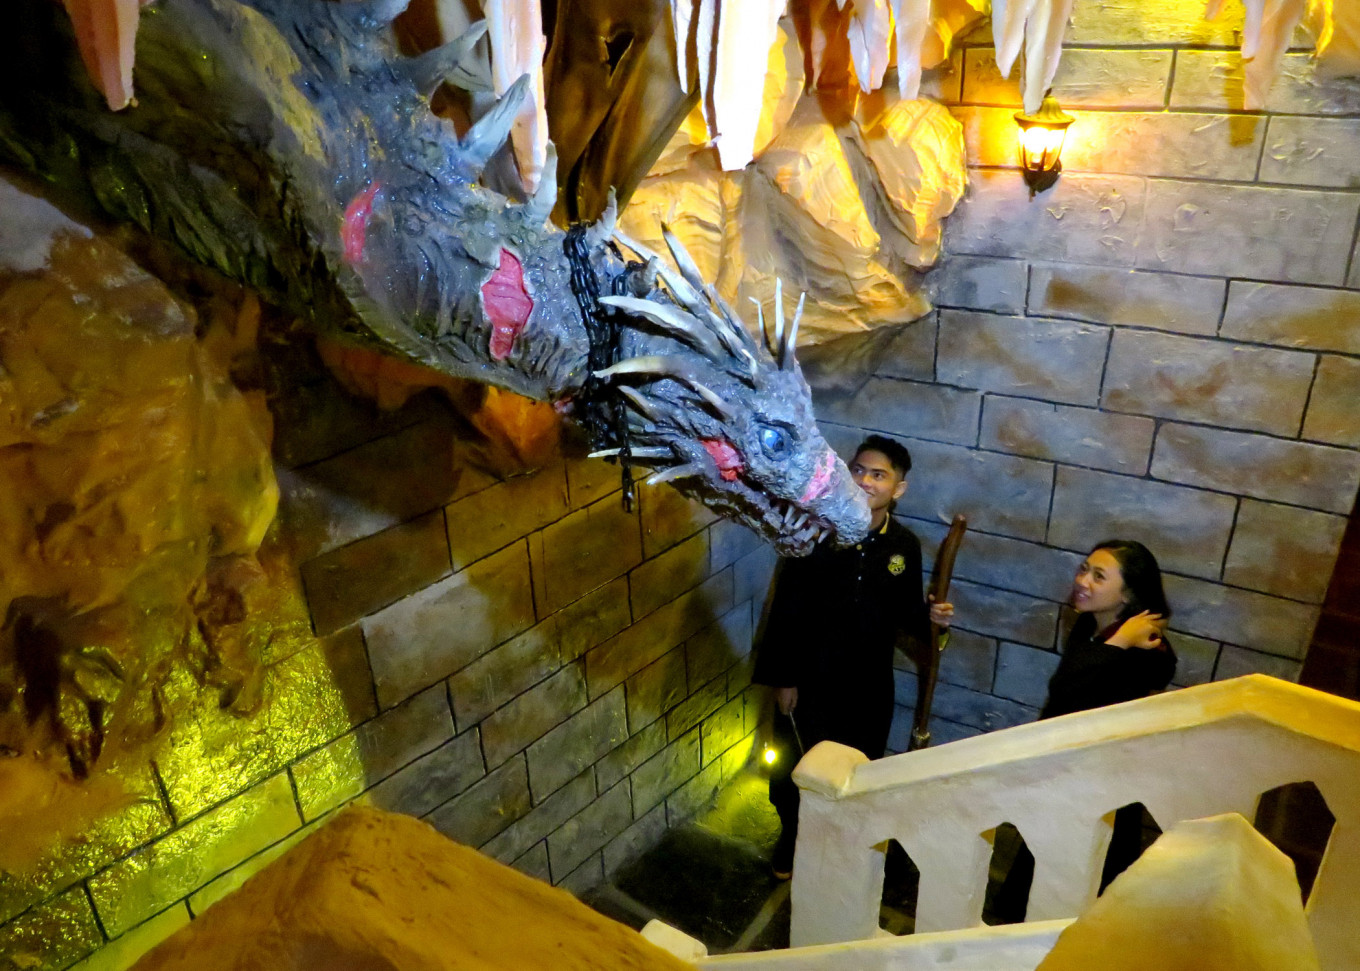 Visitors interact with an animatronic dragon head in one of the Diagon Alley zones.